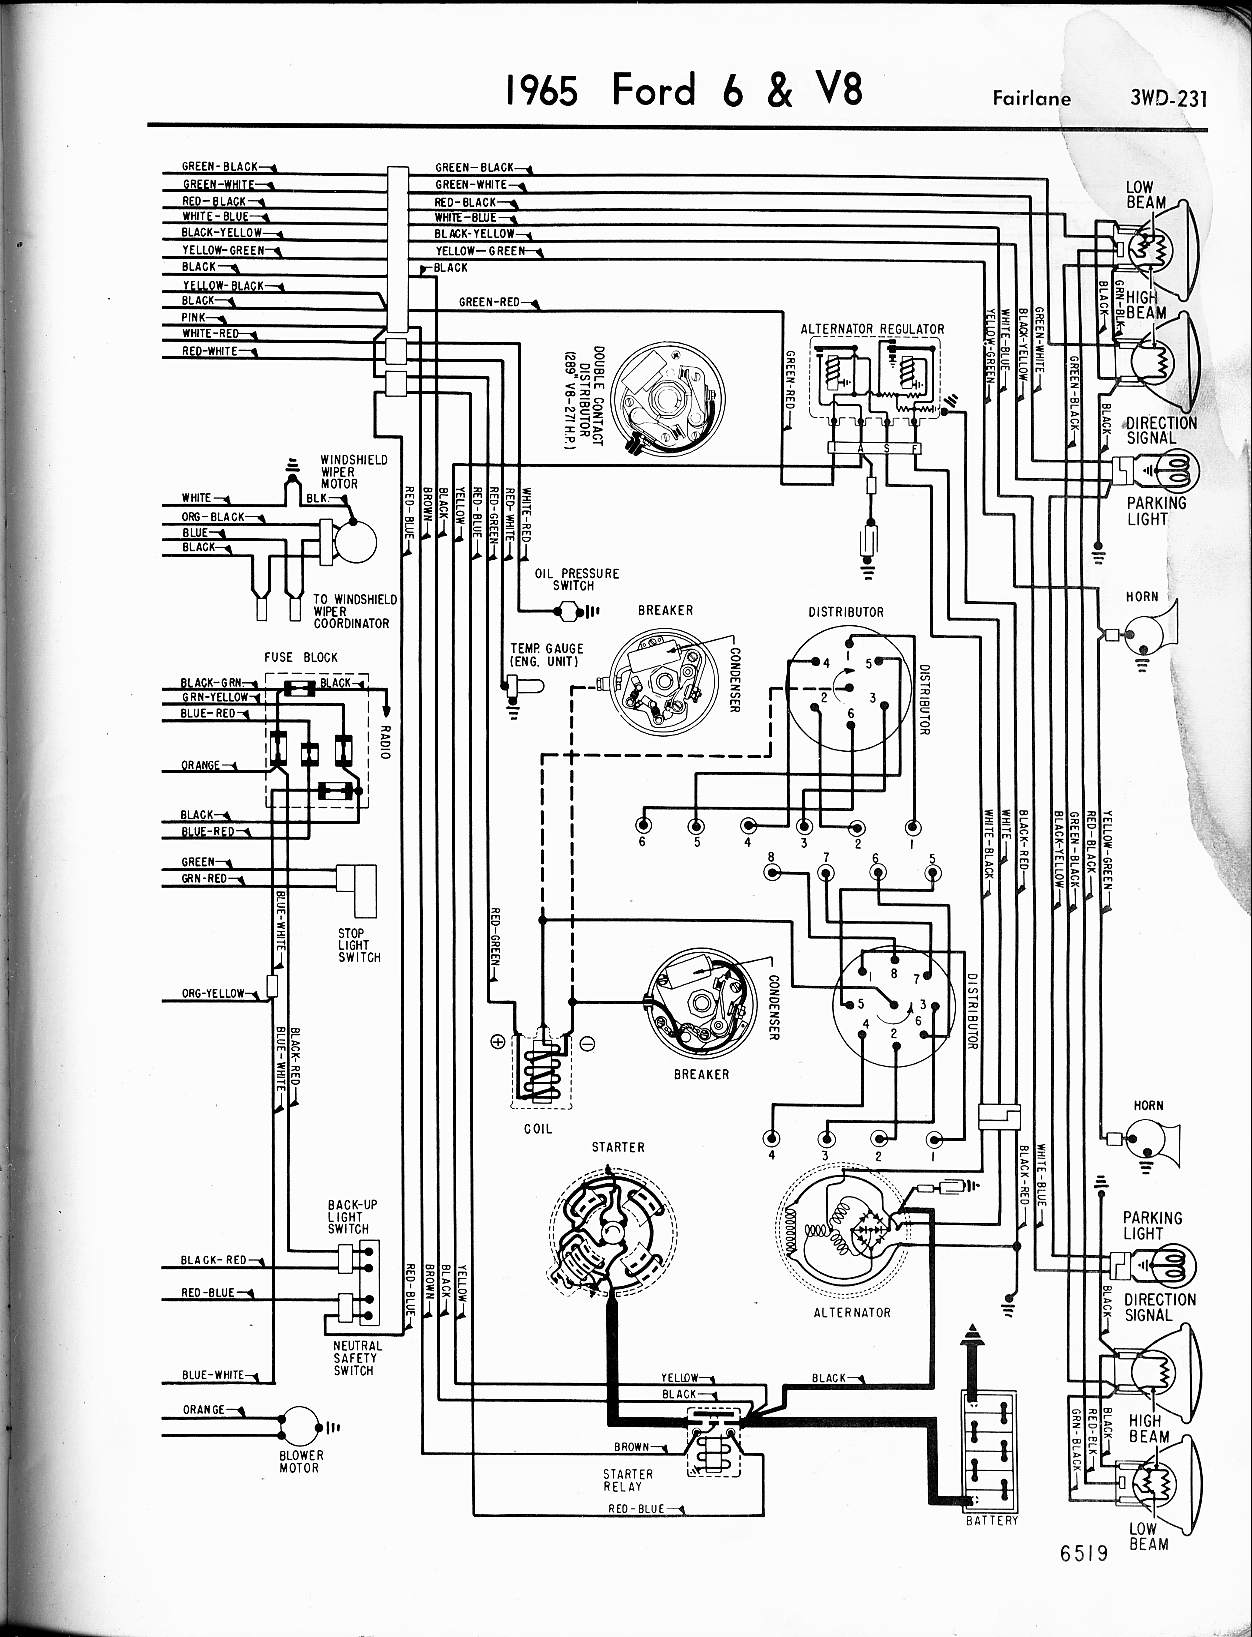 1967 Ford Msd Ignition Wiring Diagram Master Blogs 6al V8 Torino Diagrams Simple Rh 44 Berlinsky Airline De